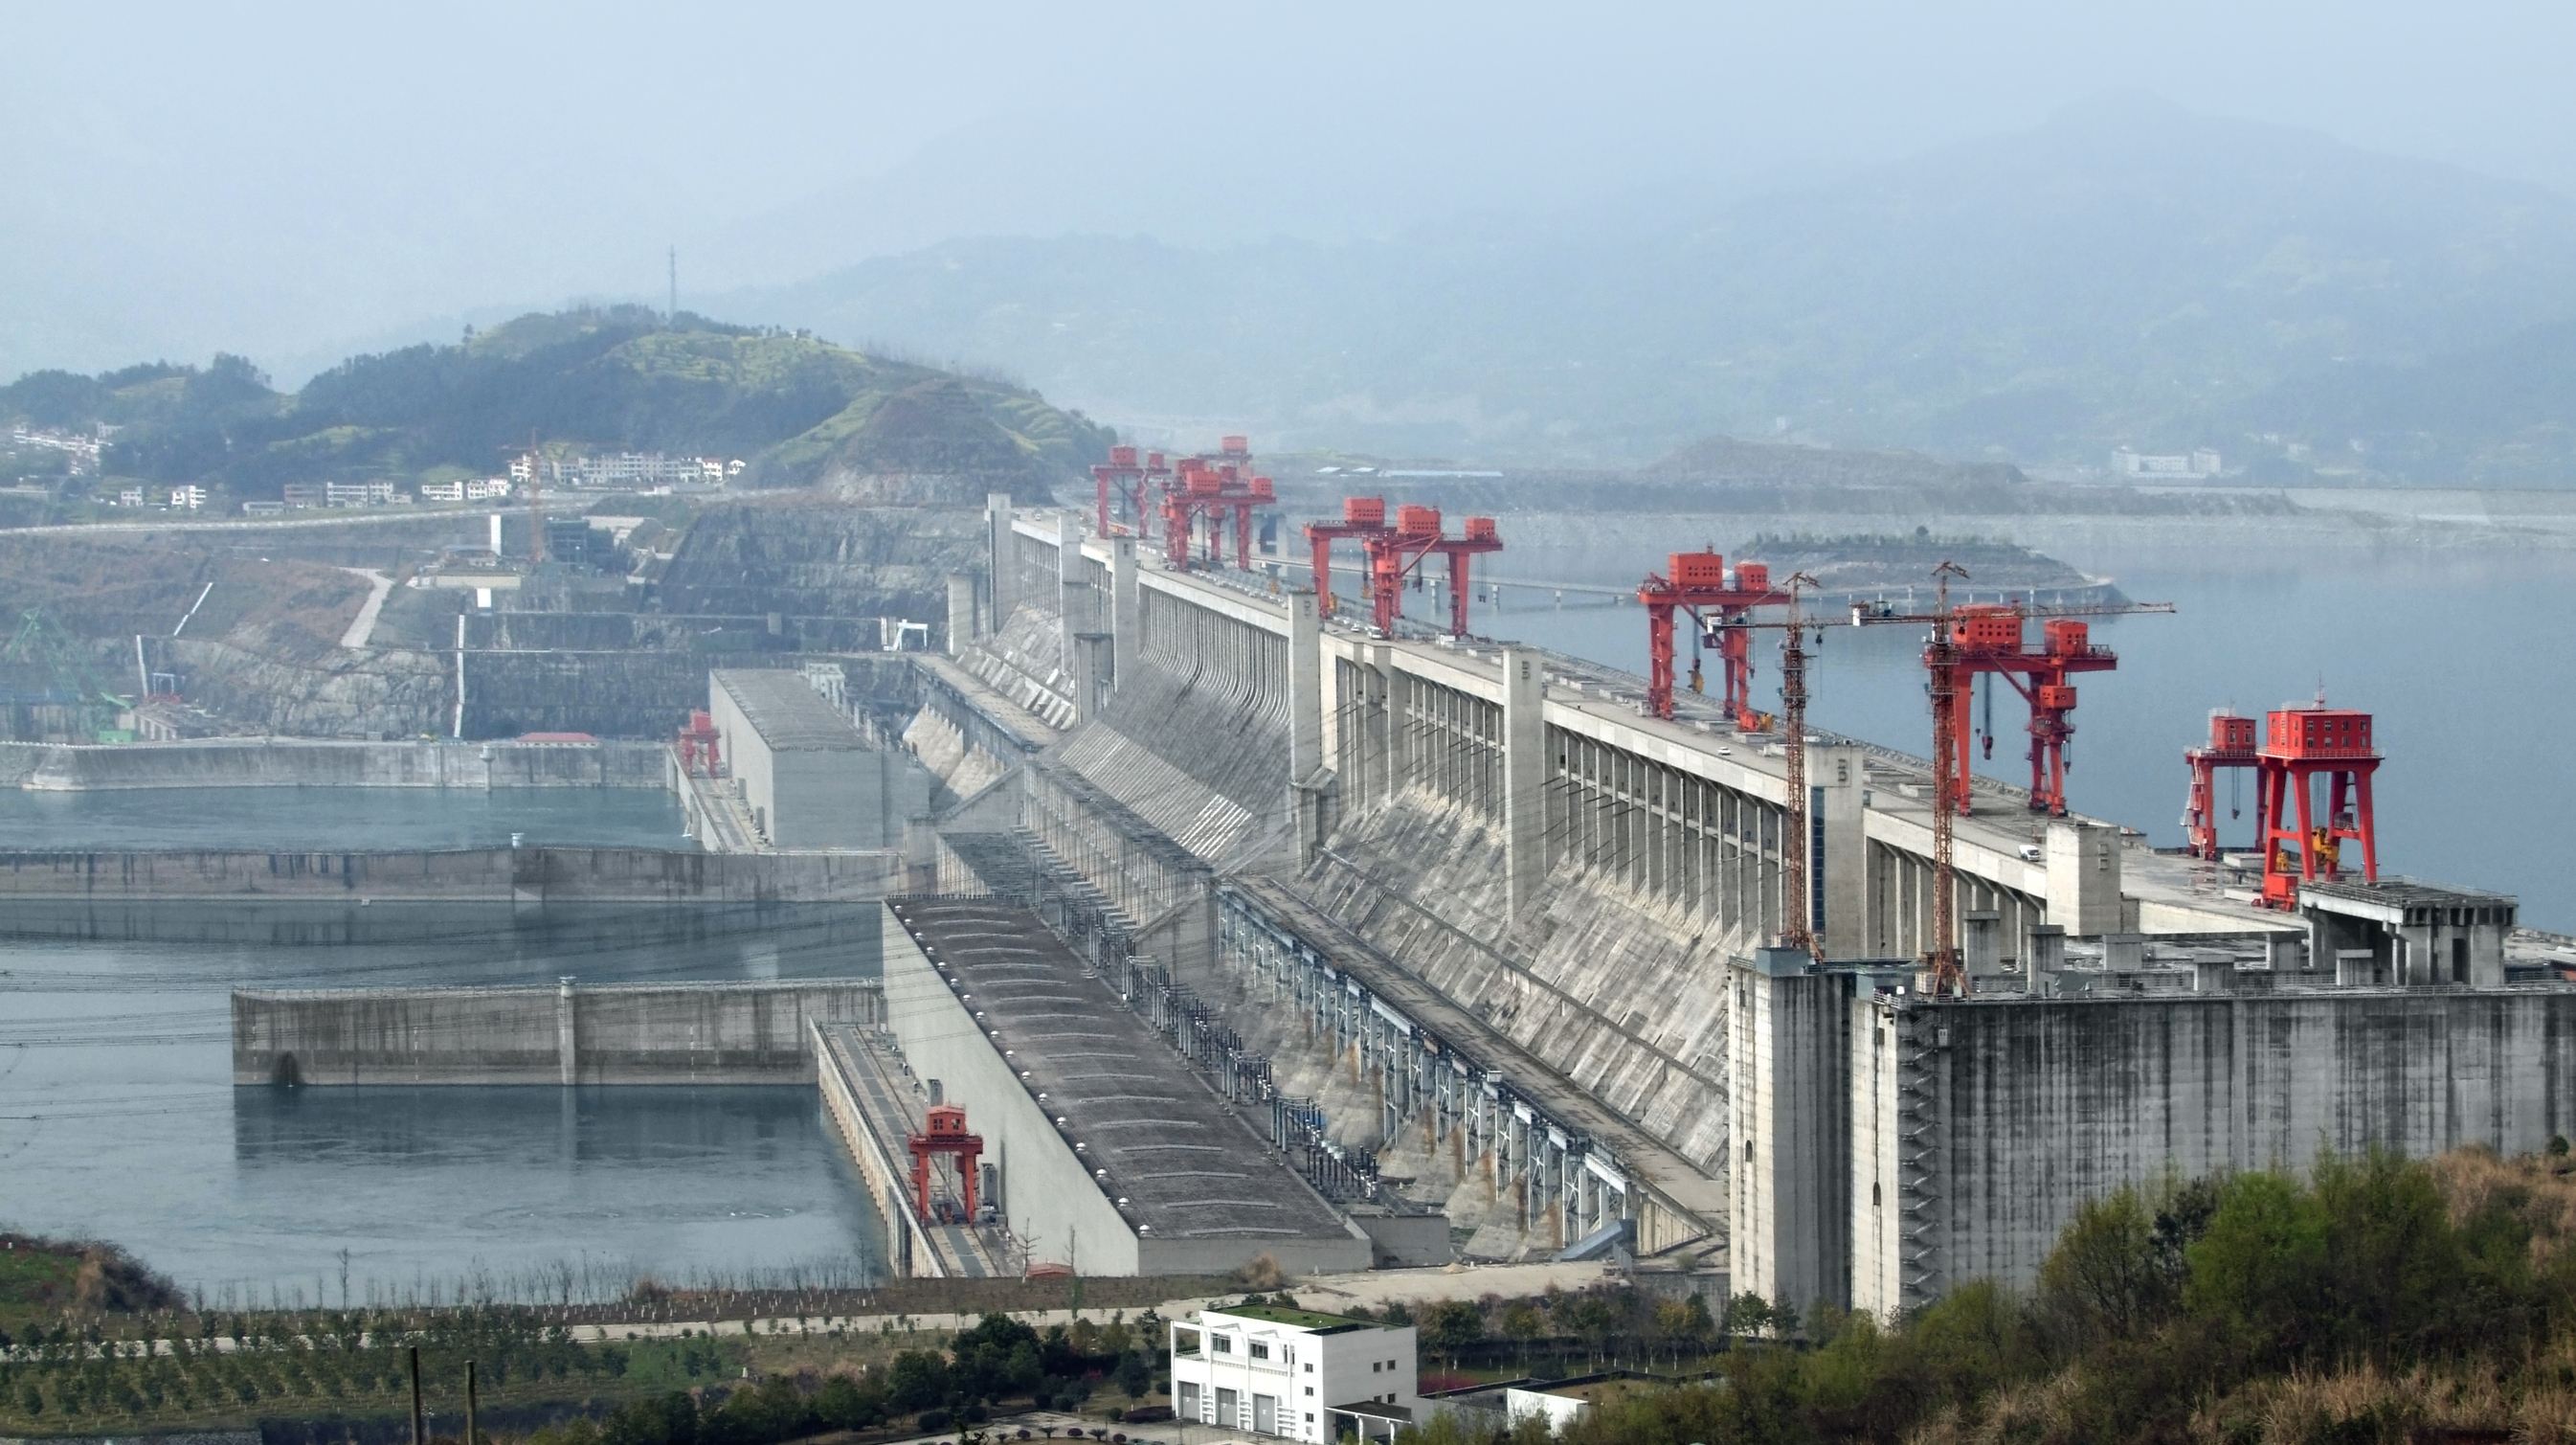 The Three Gorges Dam is the largest hydroelectric dam in the world. (SHUTTERSTOCK/Prill)